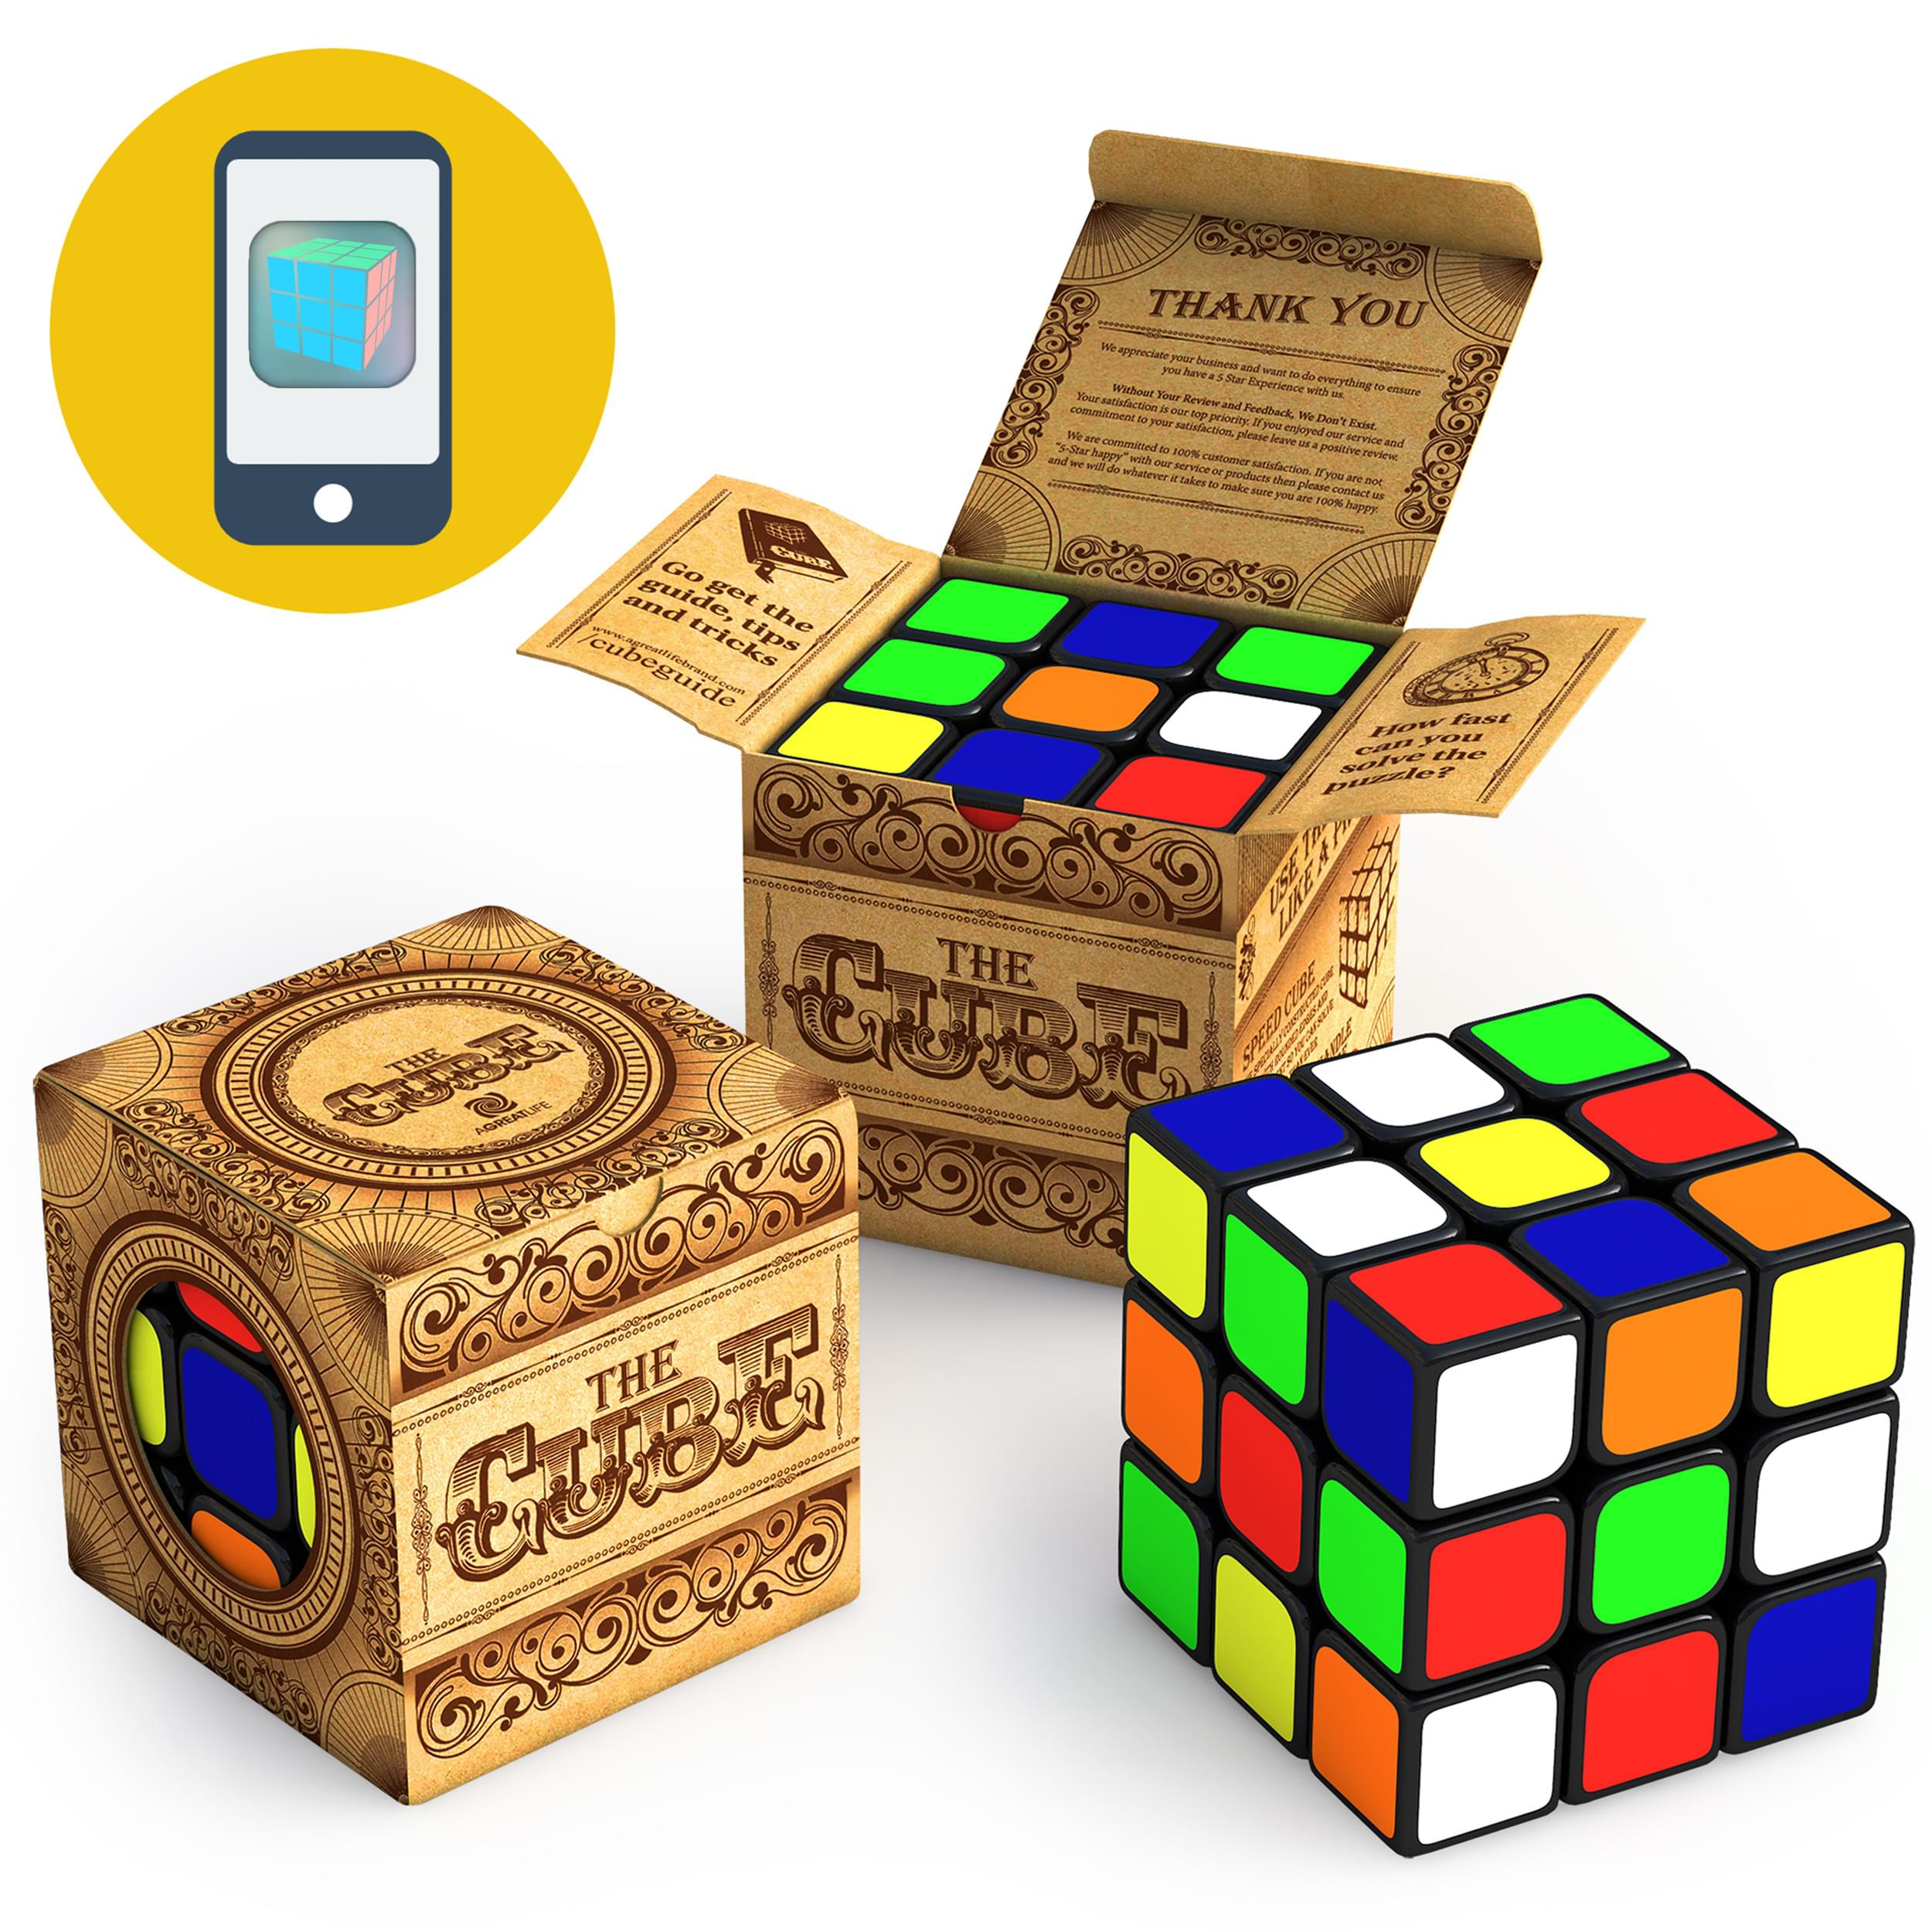 aGreatLife  Speed Cube 3x3x3 rubiks - aGreatlife Brand available in amazon, Shop aGreatlife Toys, Best seller